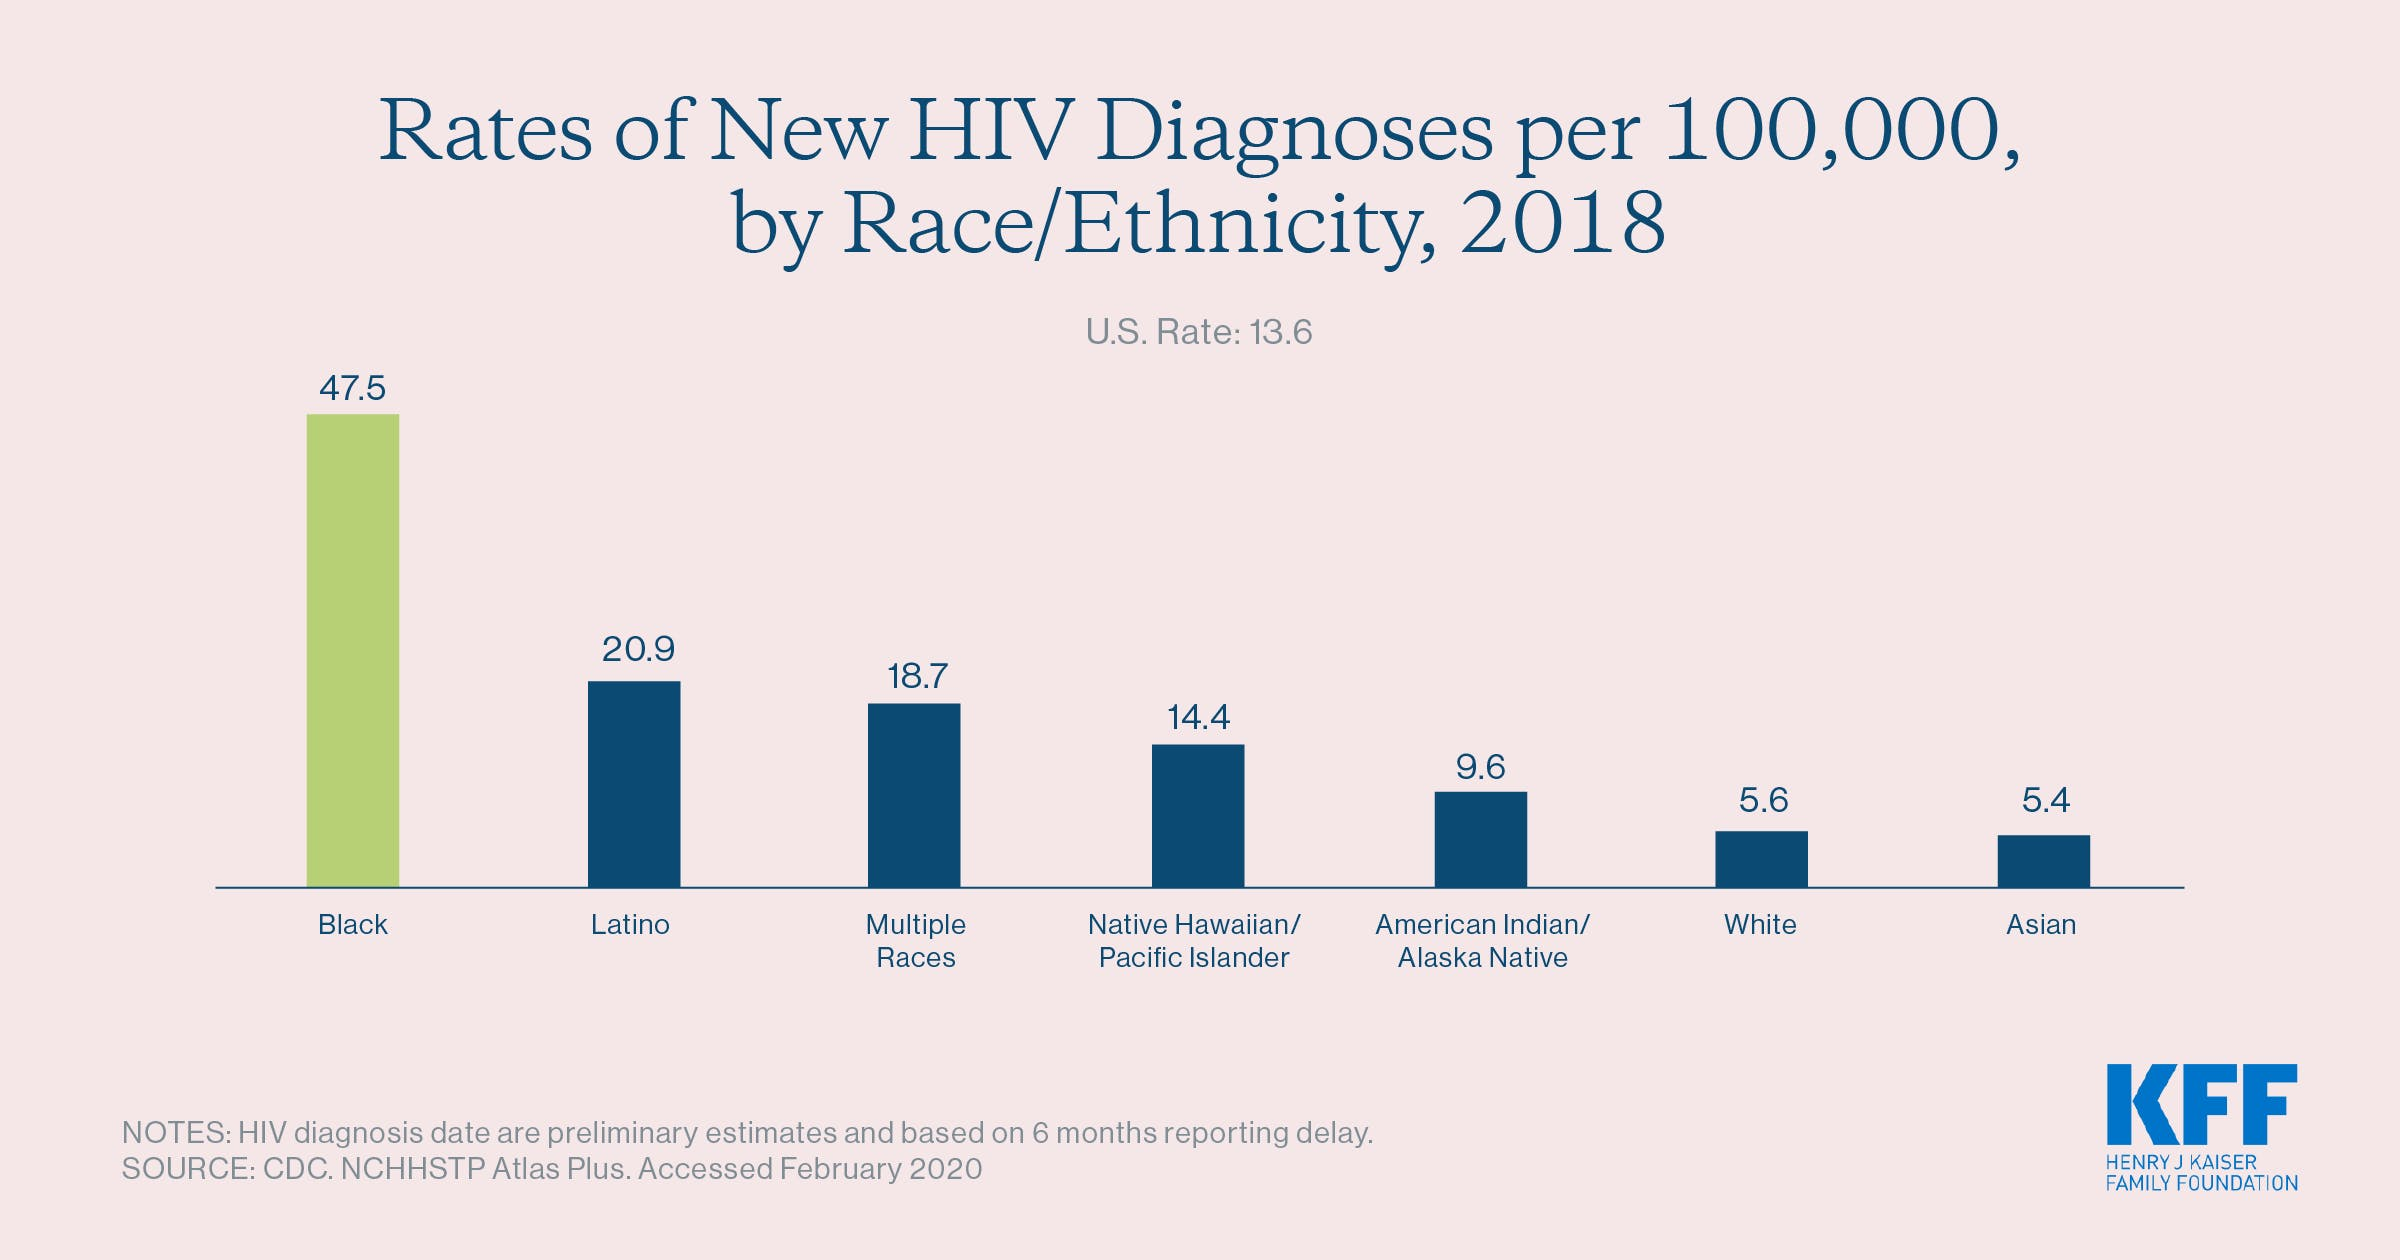 Rates of New HIV Diagnoses